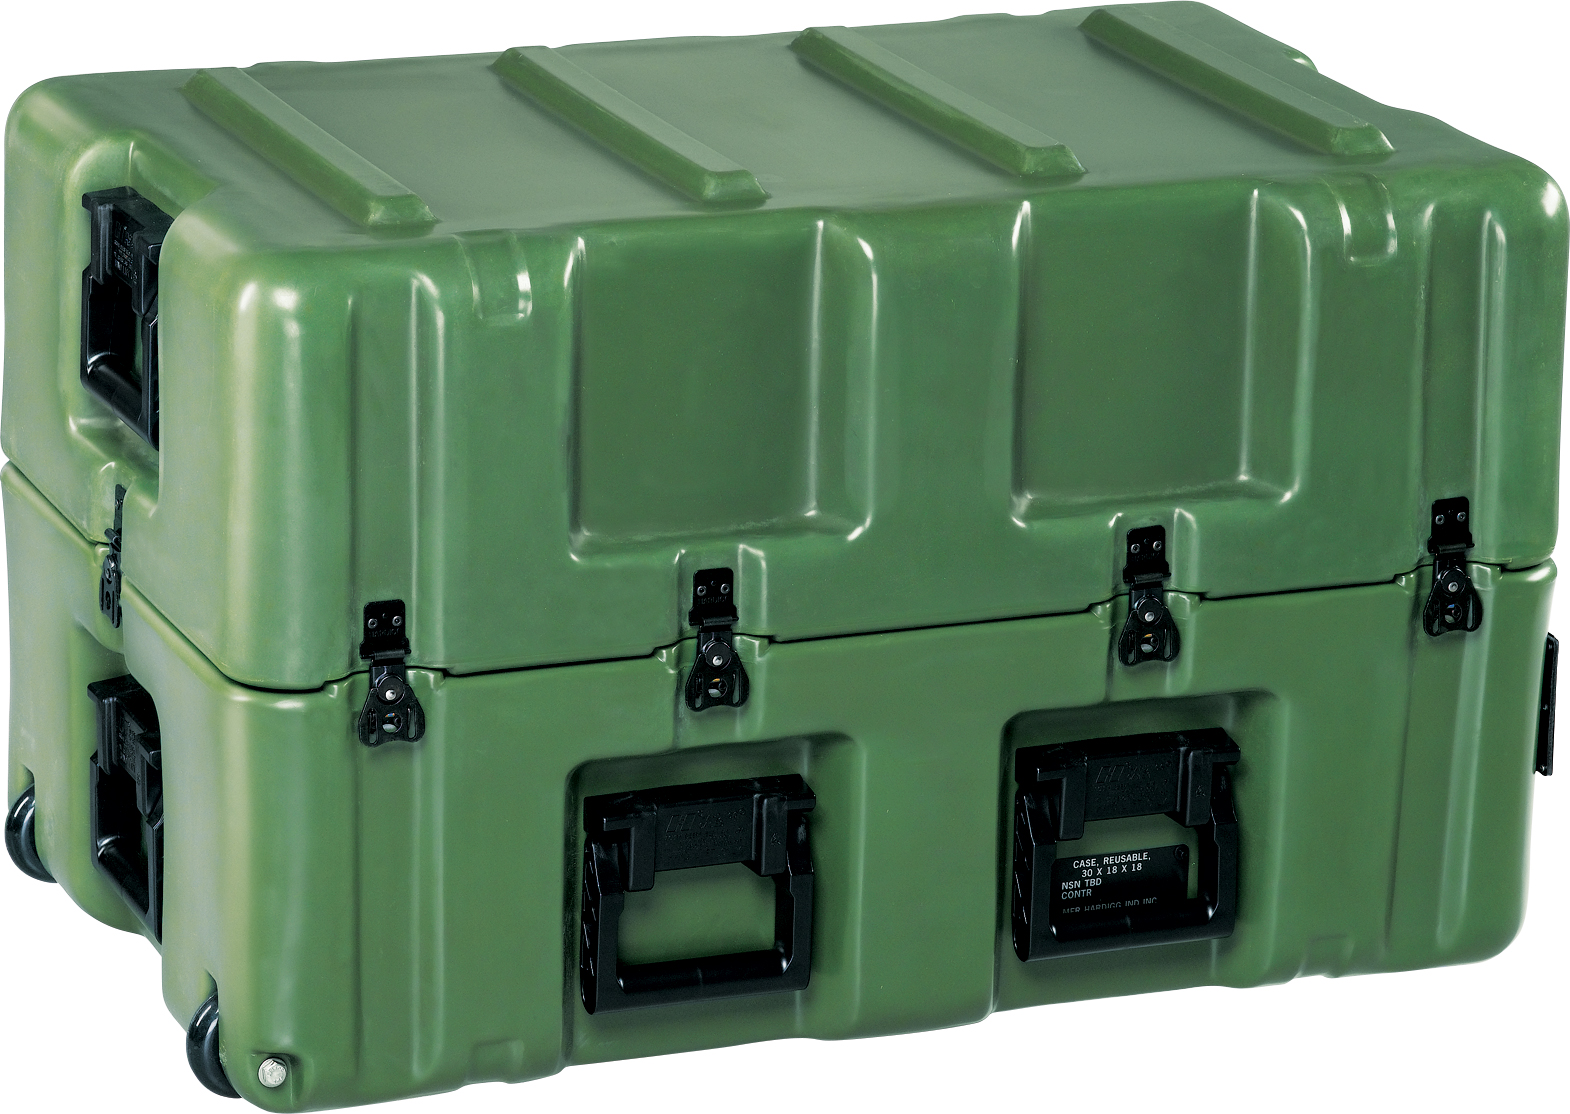 pelican peli products 472 MEDCHEST6 military medic supply chest box